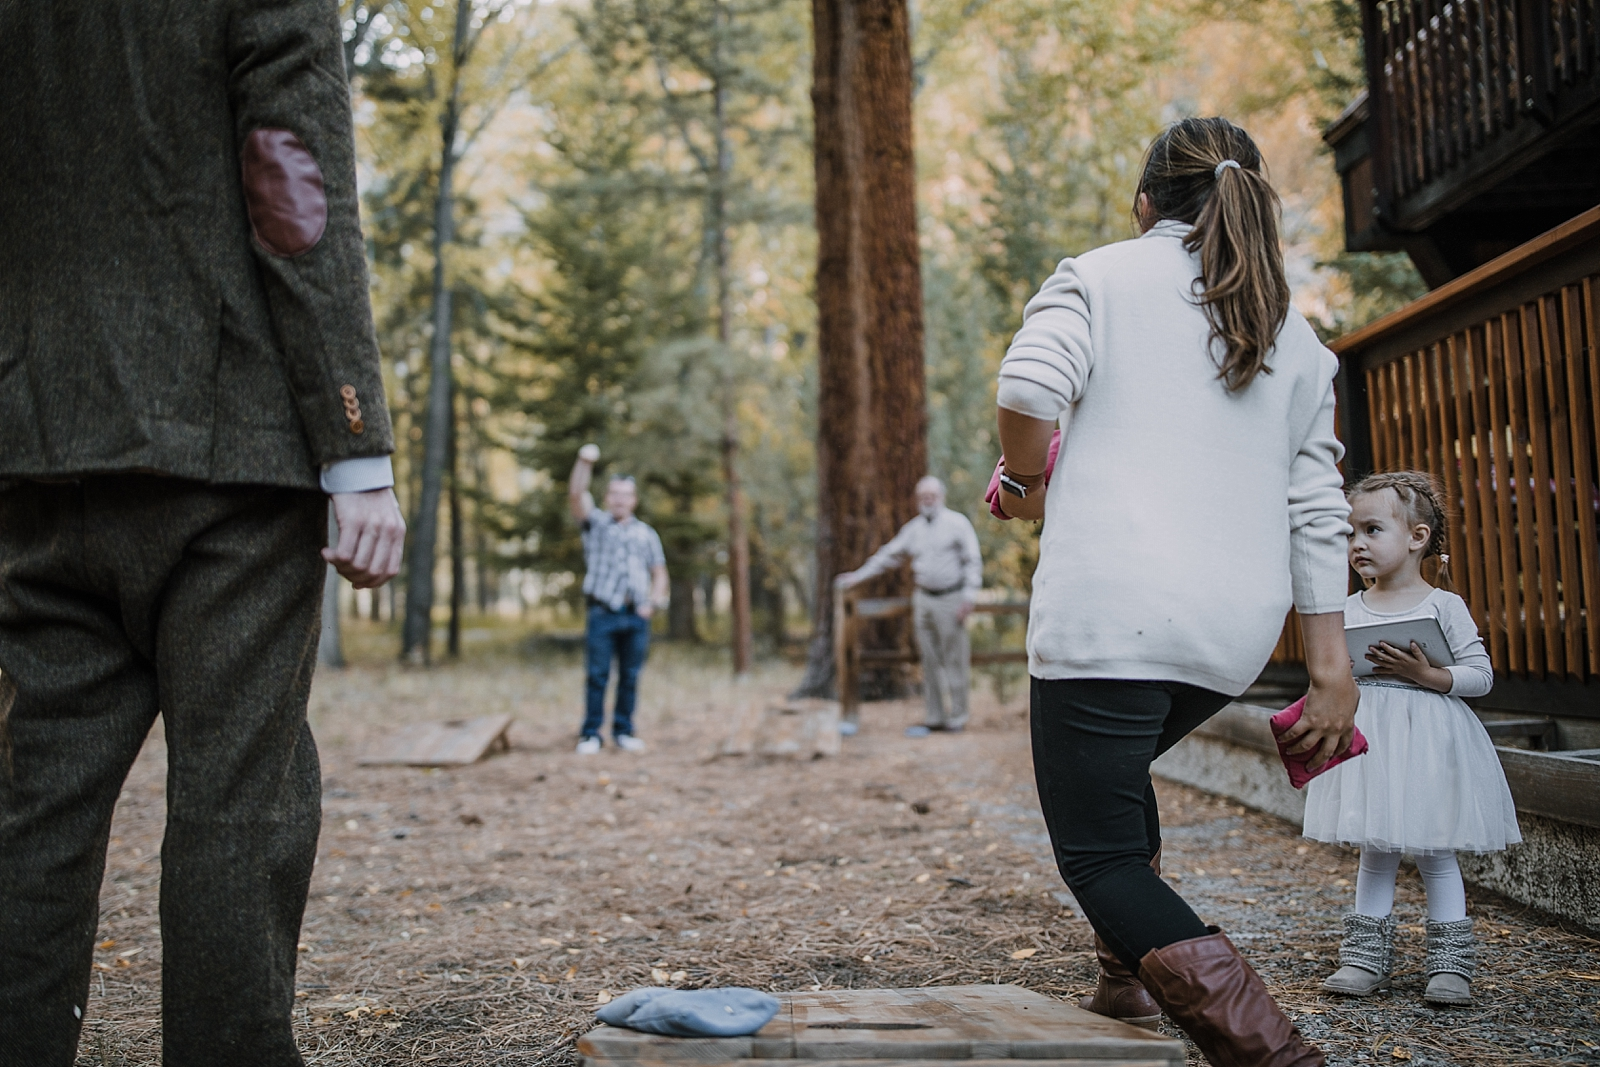 wedding yard games, couple hiking, norway elopement, post elopement celebration, wedding in the woods, buena vista elopement, buena vista wedding, nathrop colorado wedding, elope with your dog